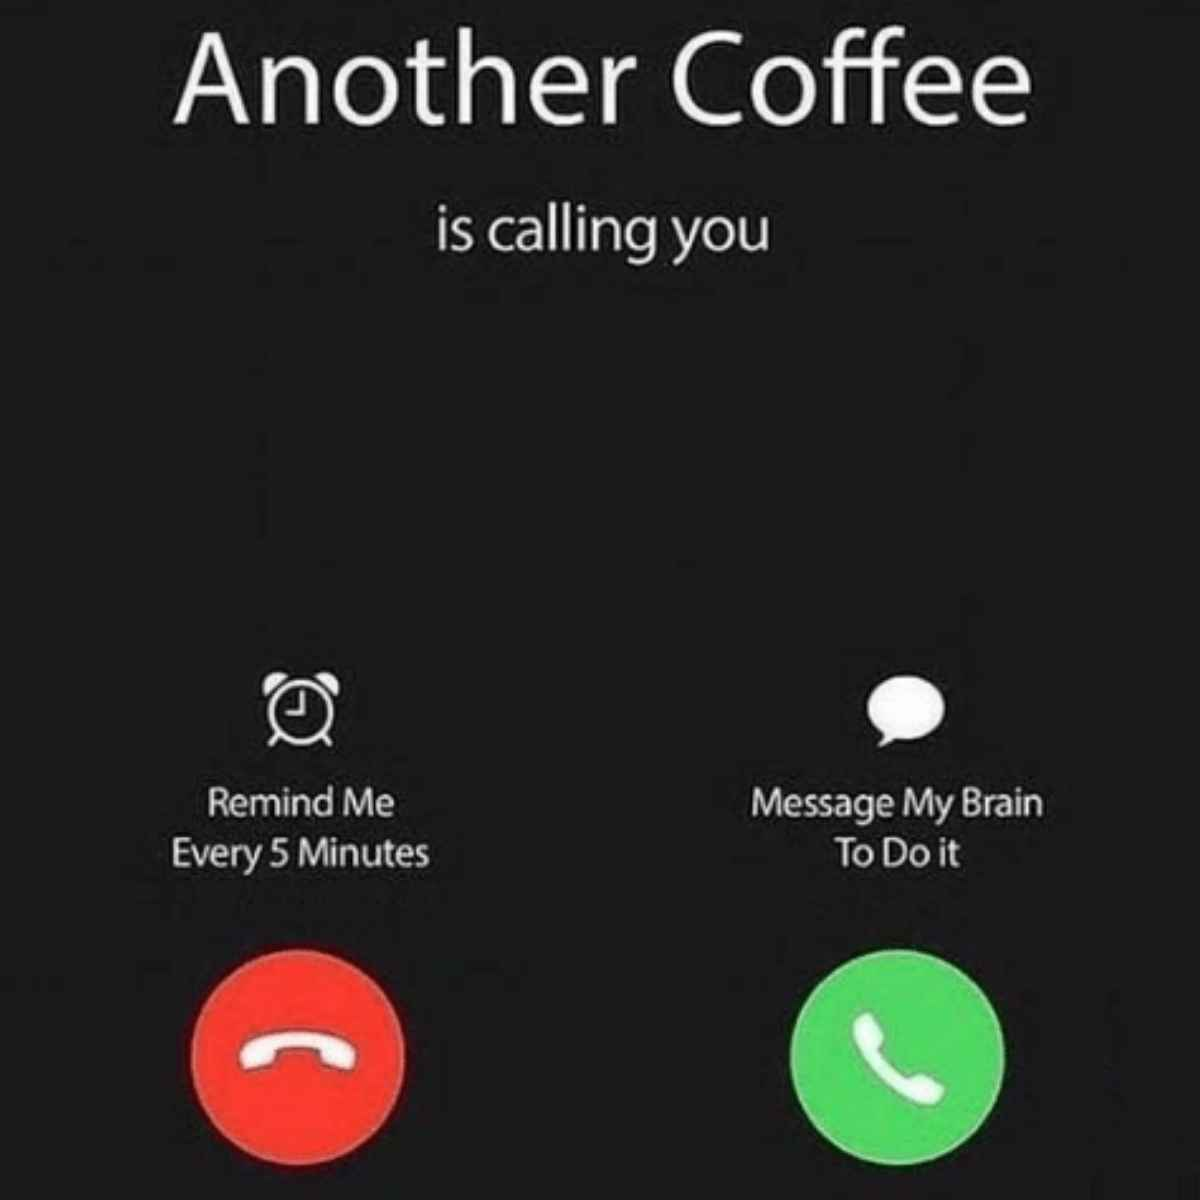 another coffee is calling meme